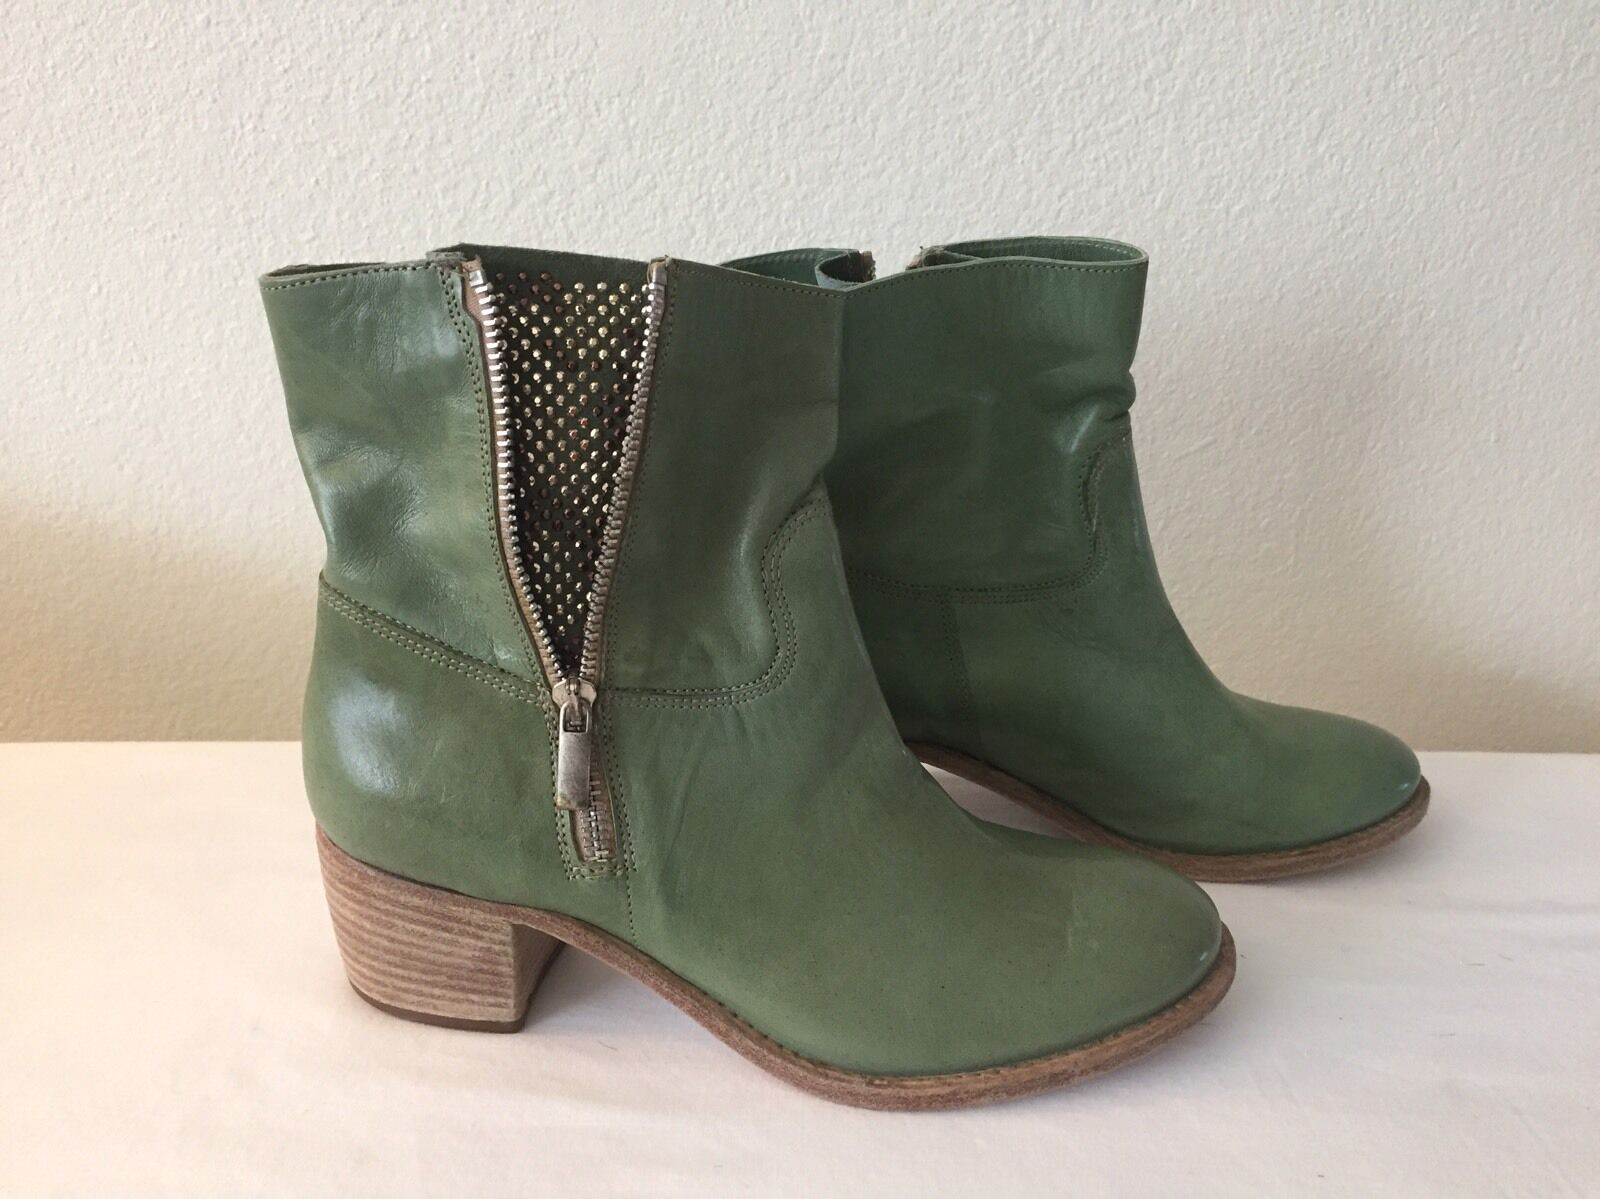 NEW PROGETTO Green Leather Boots SZ 39/8.5M $235